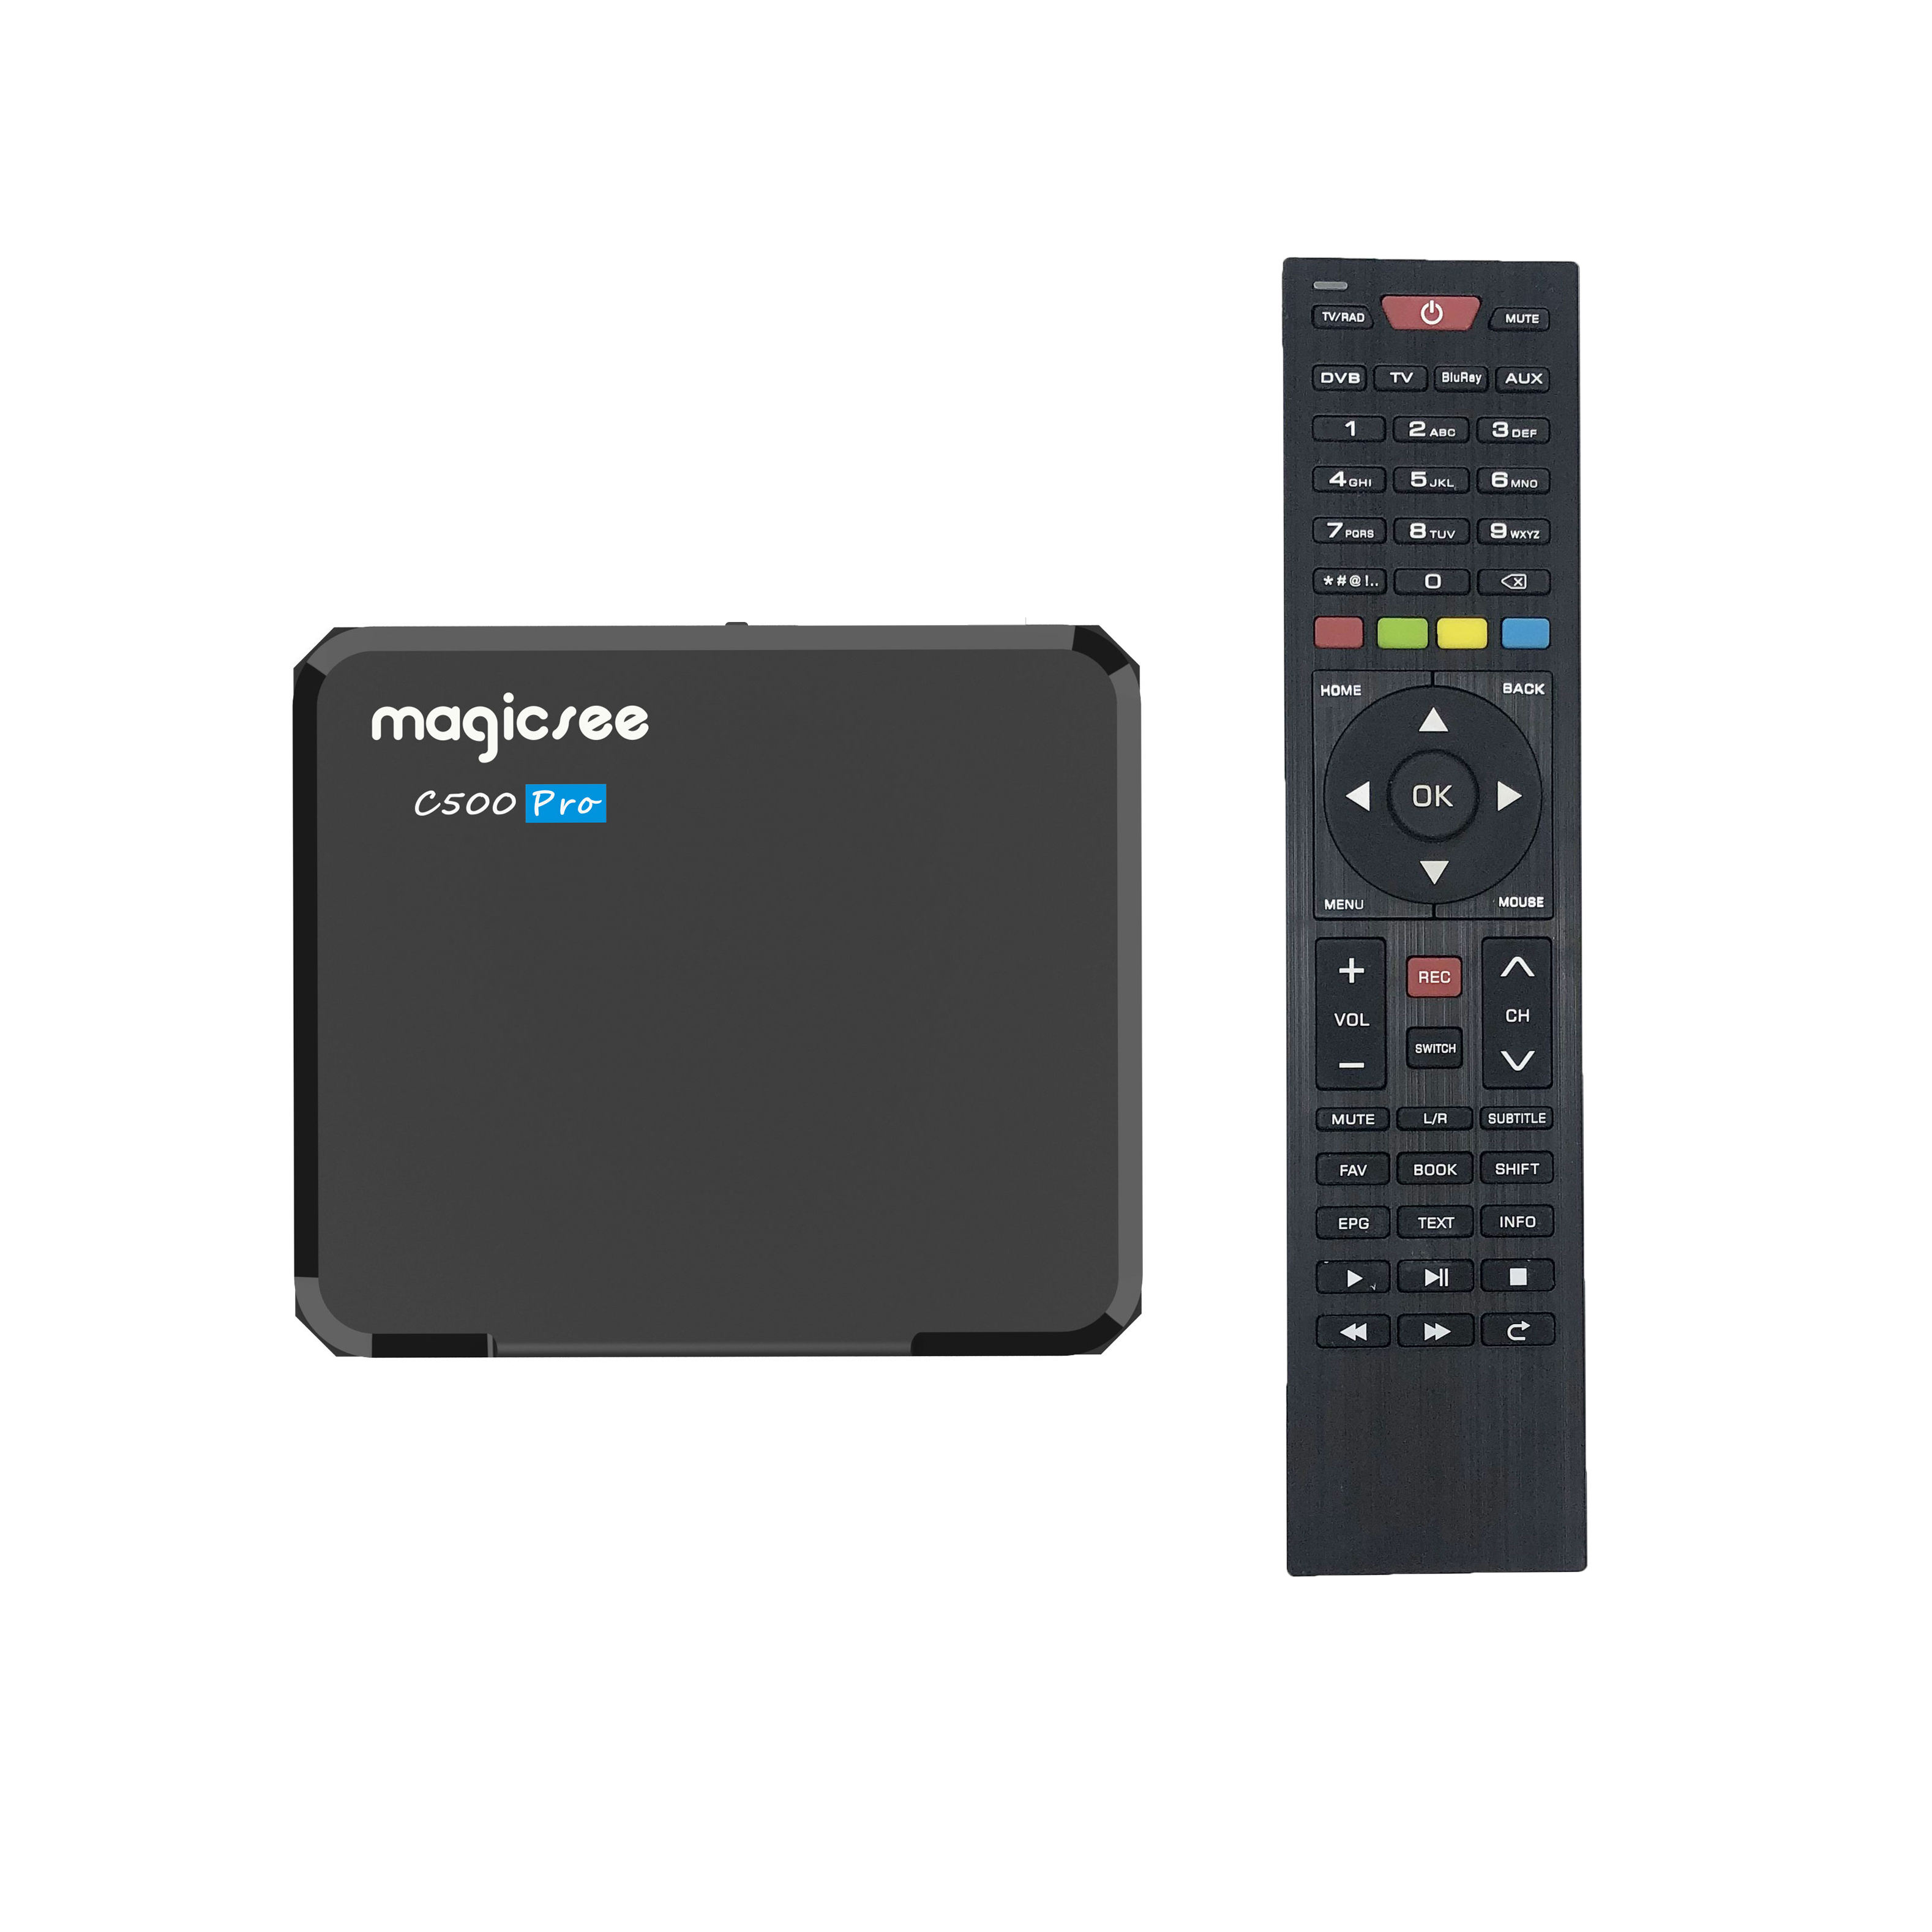 Magicsee c500 pro s905x3 android tv box digital satellite receiver DVB-S2X/S2 DVB T2 ATSC Android 4k tv dvb box